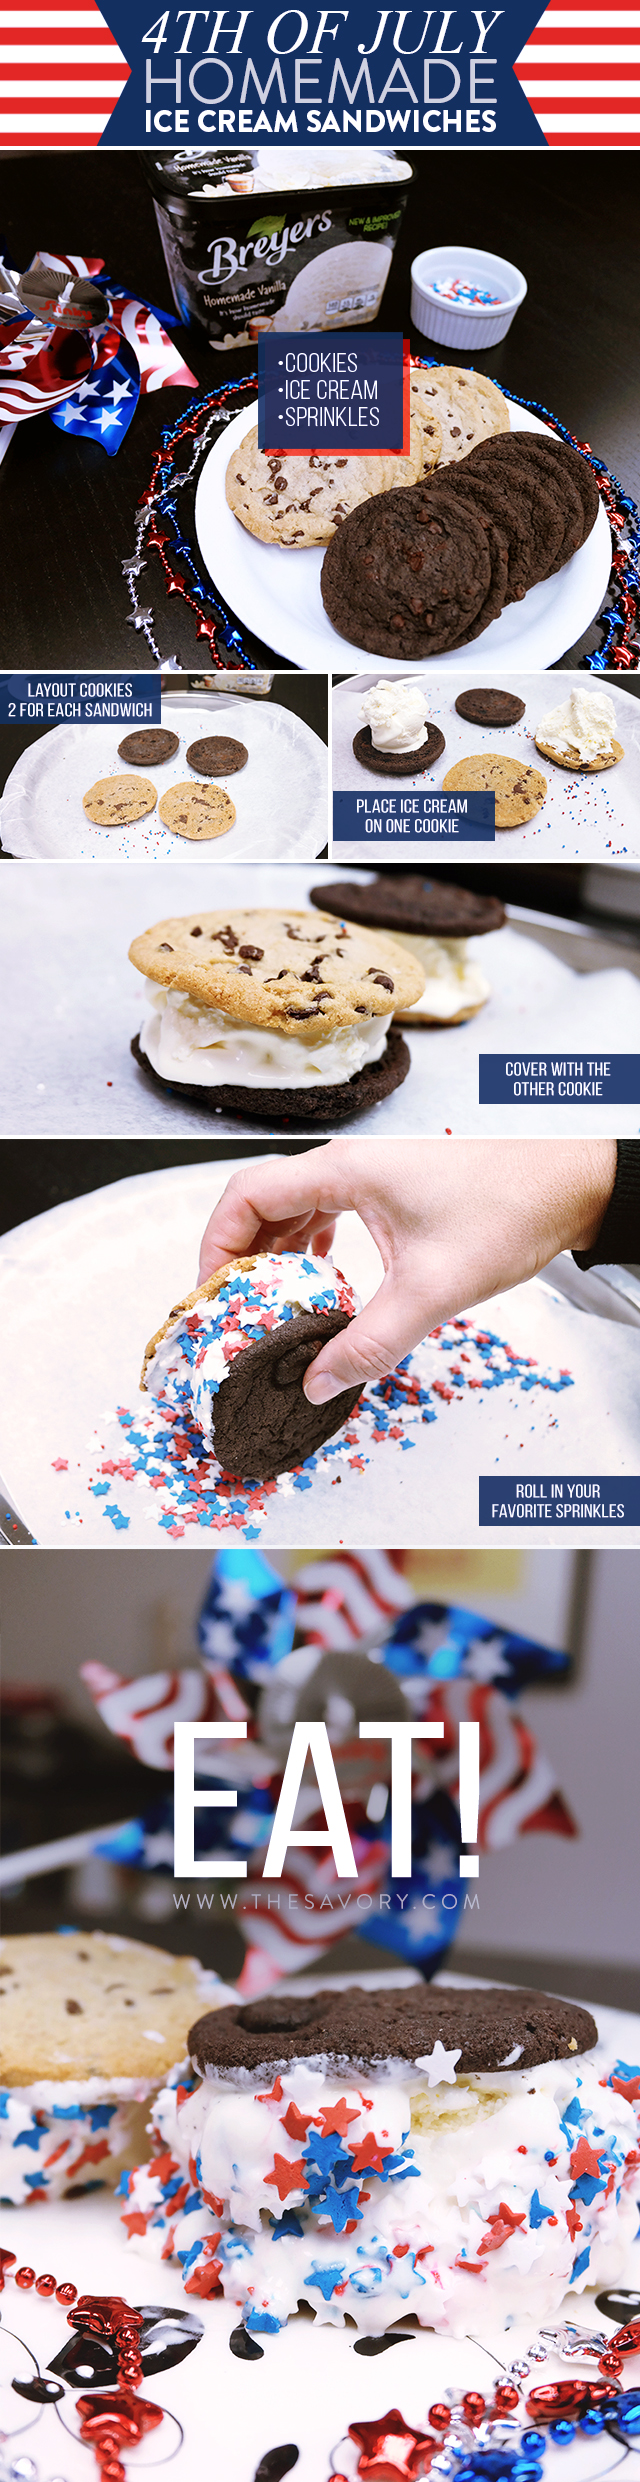 4th of July Homemade Ice Cream Sandwiches: Savory Snacks | The Savory